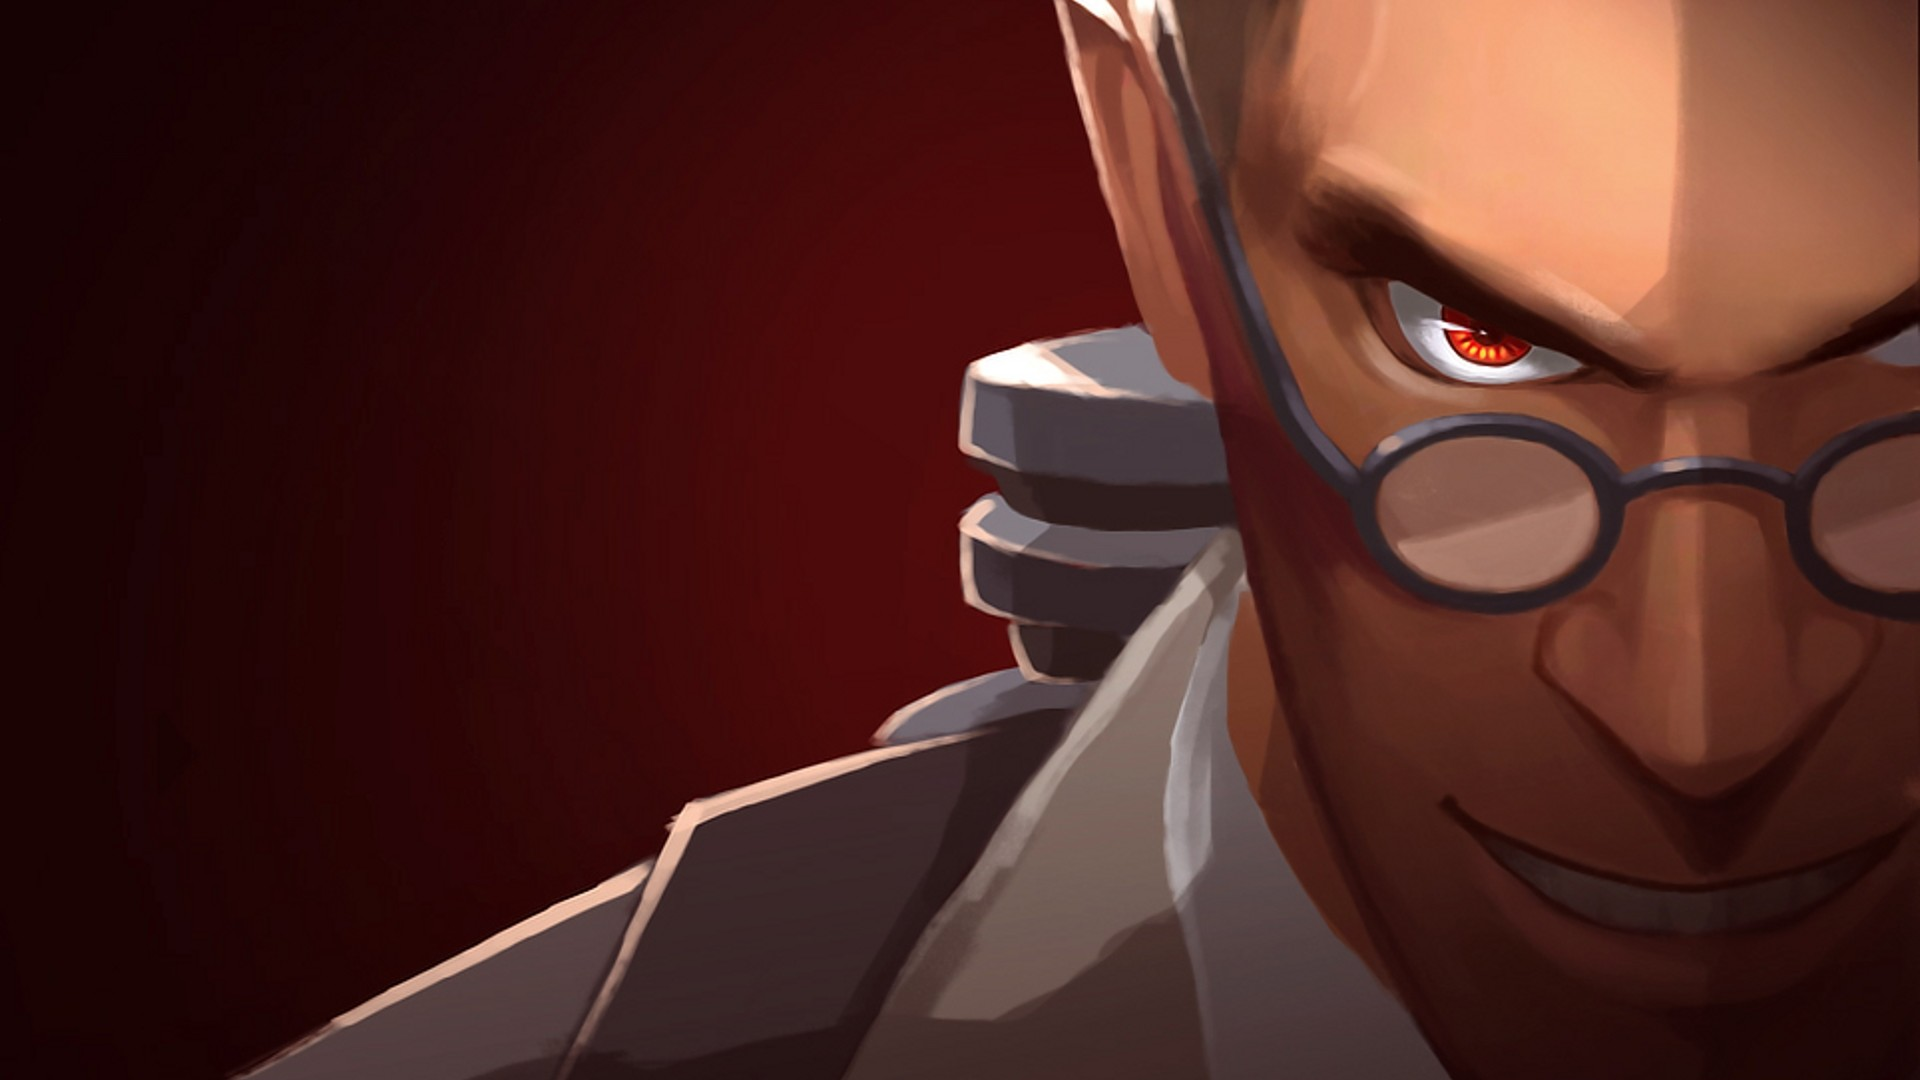 Tf2 Soldier Wallpaper 81 images 1920x1080